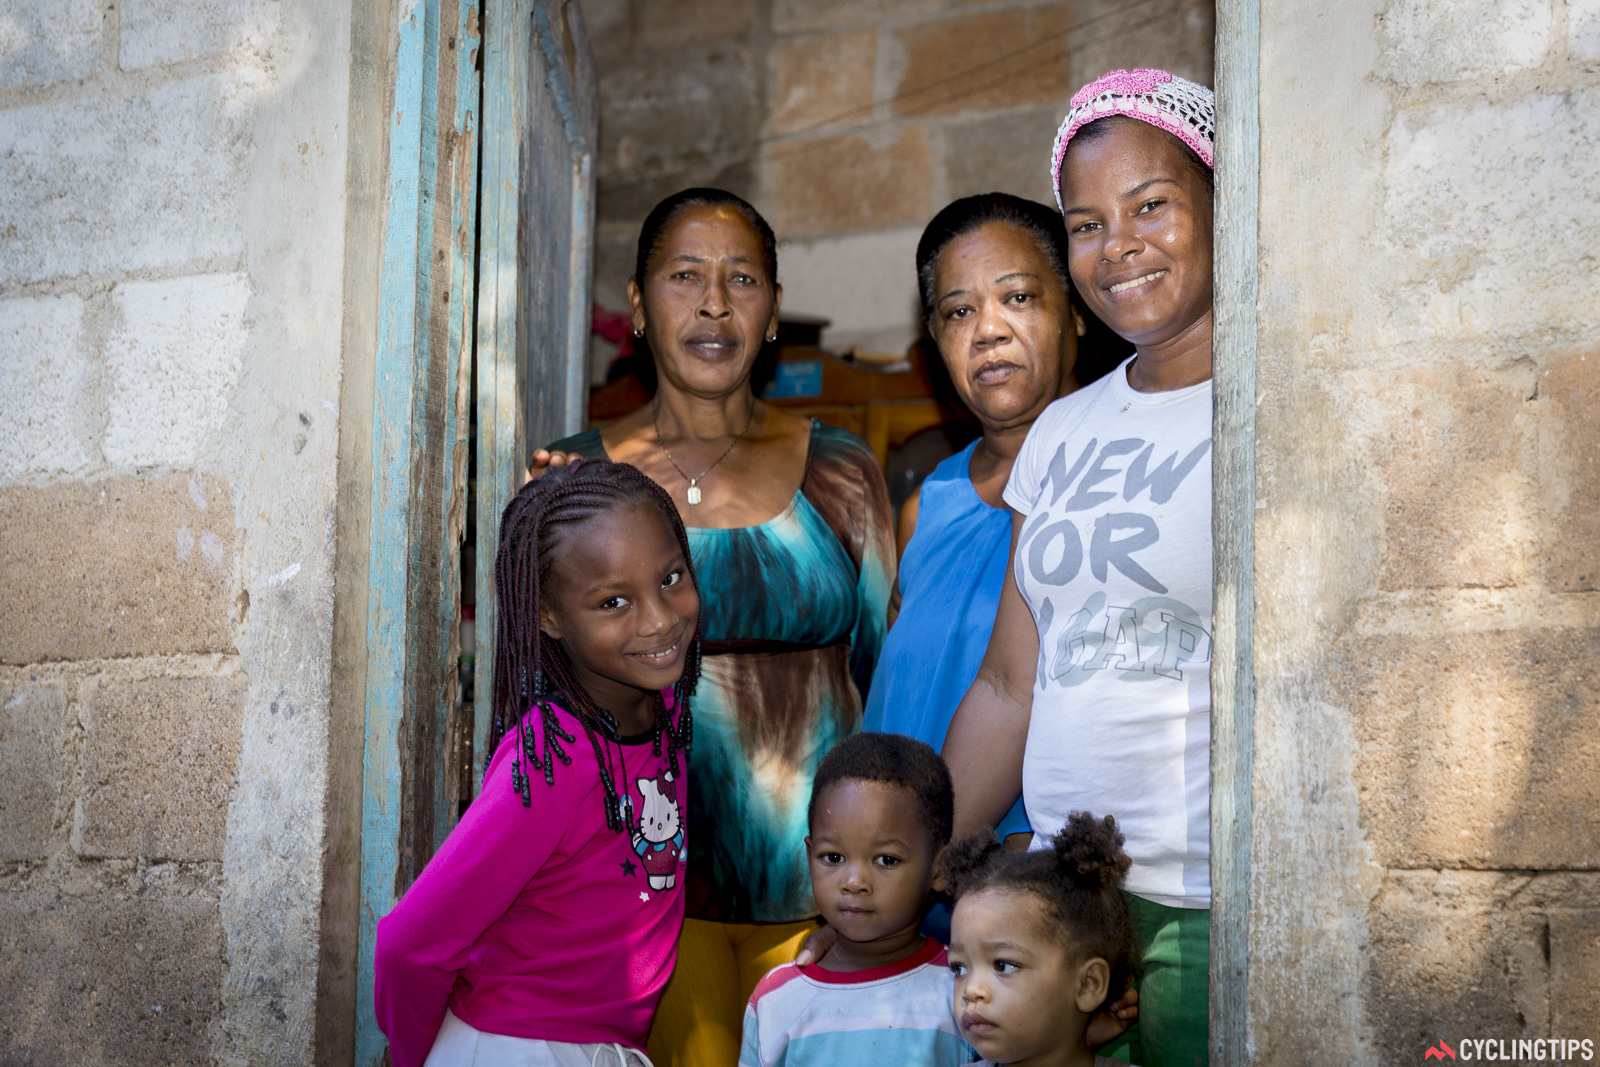 One of the three familes being helped by the house build. Three of the six pictured (mother, daughter and son) will live together with their father in the new dwelling, having had to share with her parents previously.